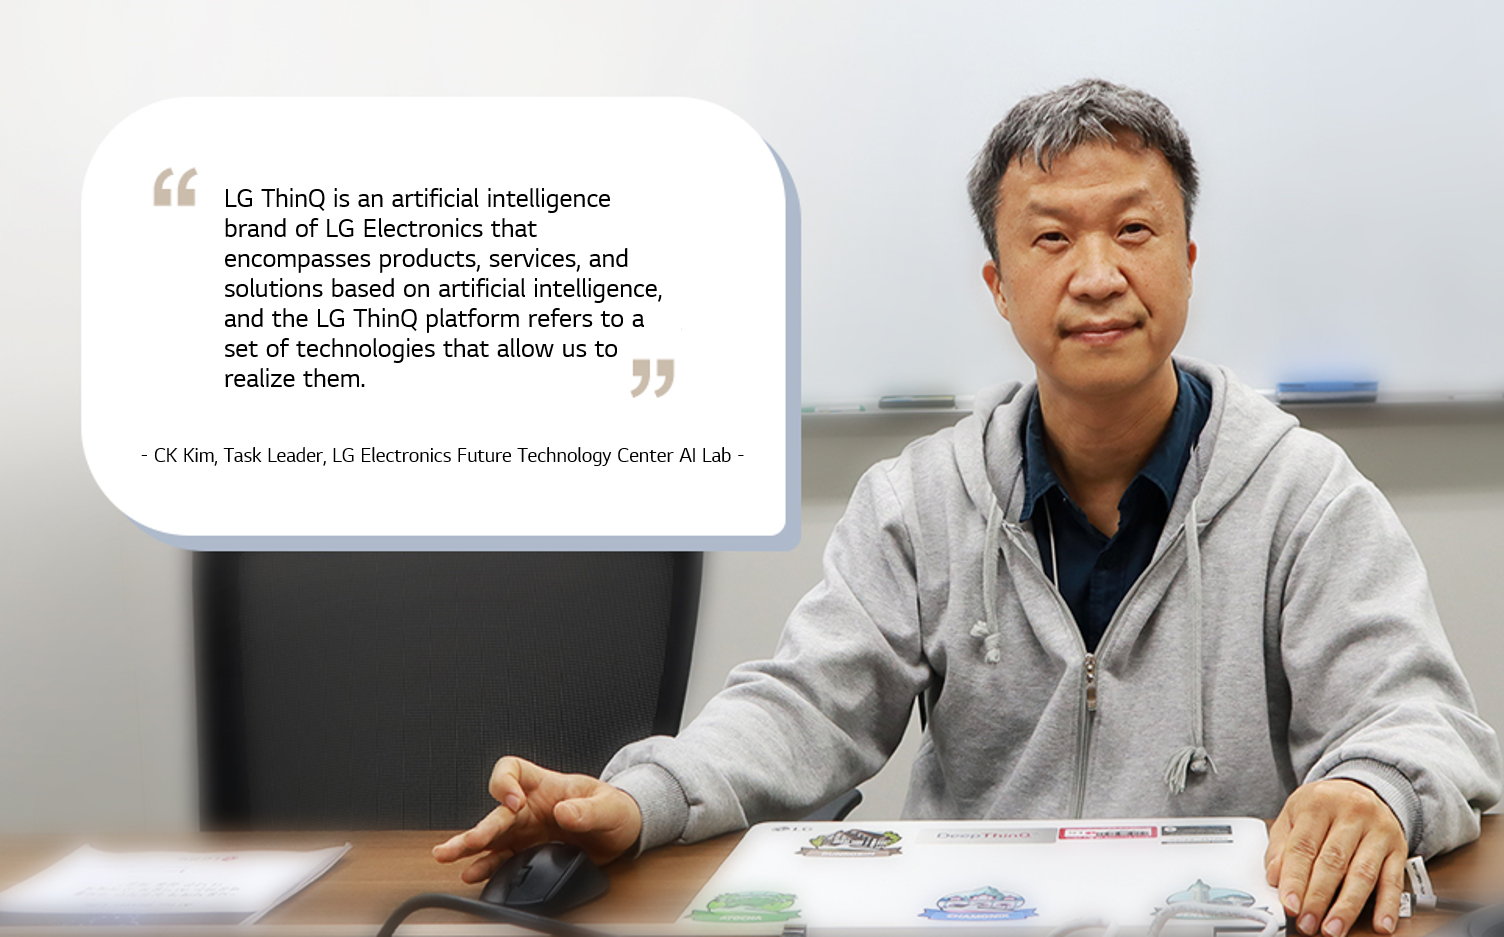 LG ThinQ encompasses products, services, and solutions based on artificial intelligence.